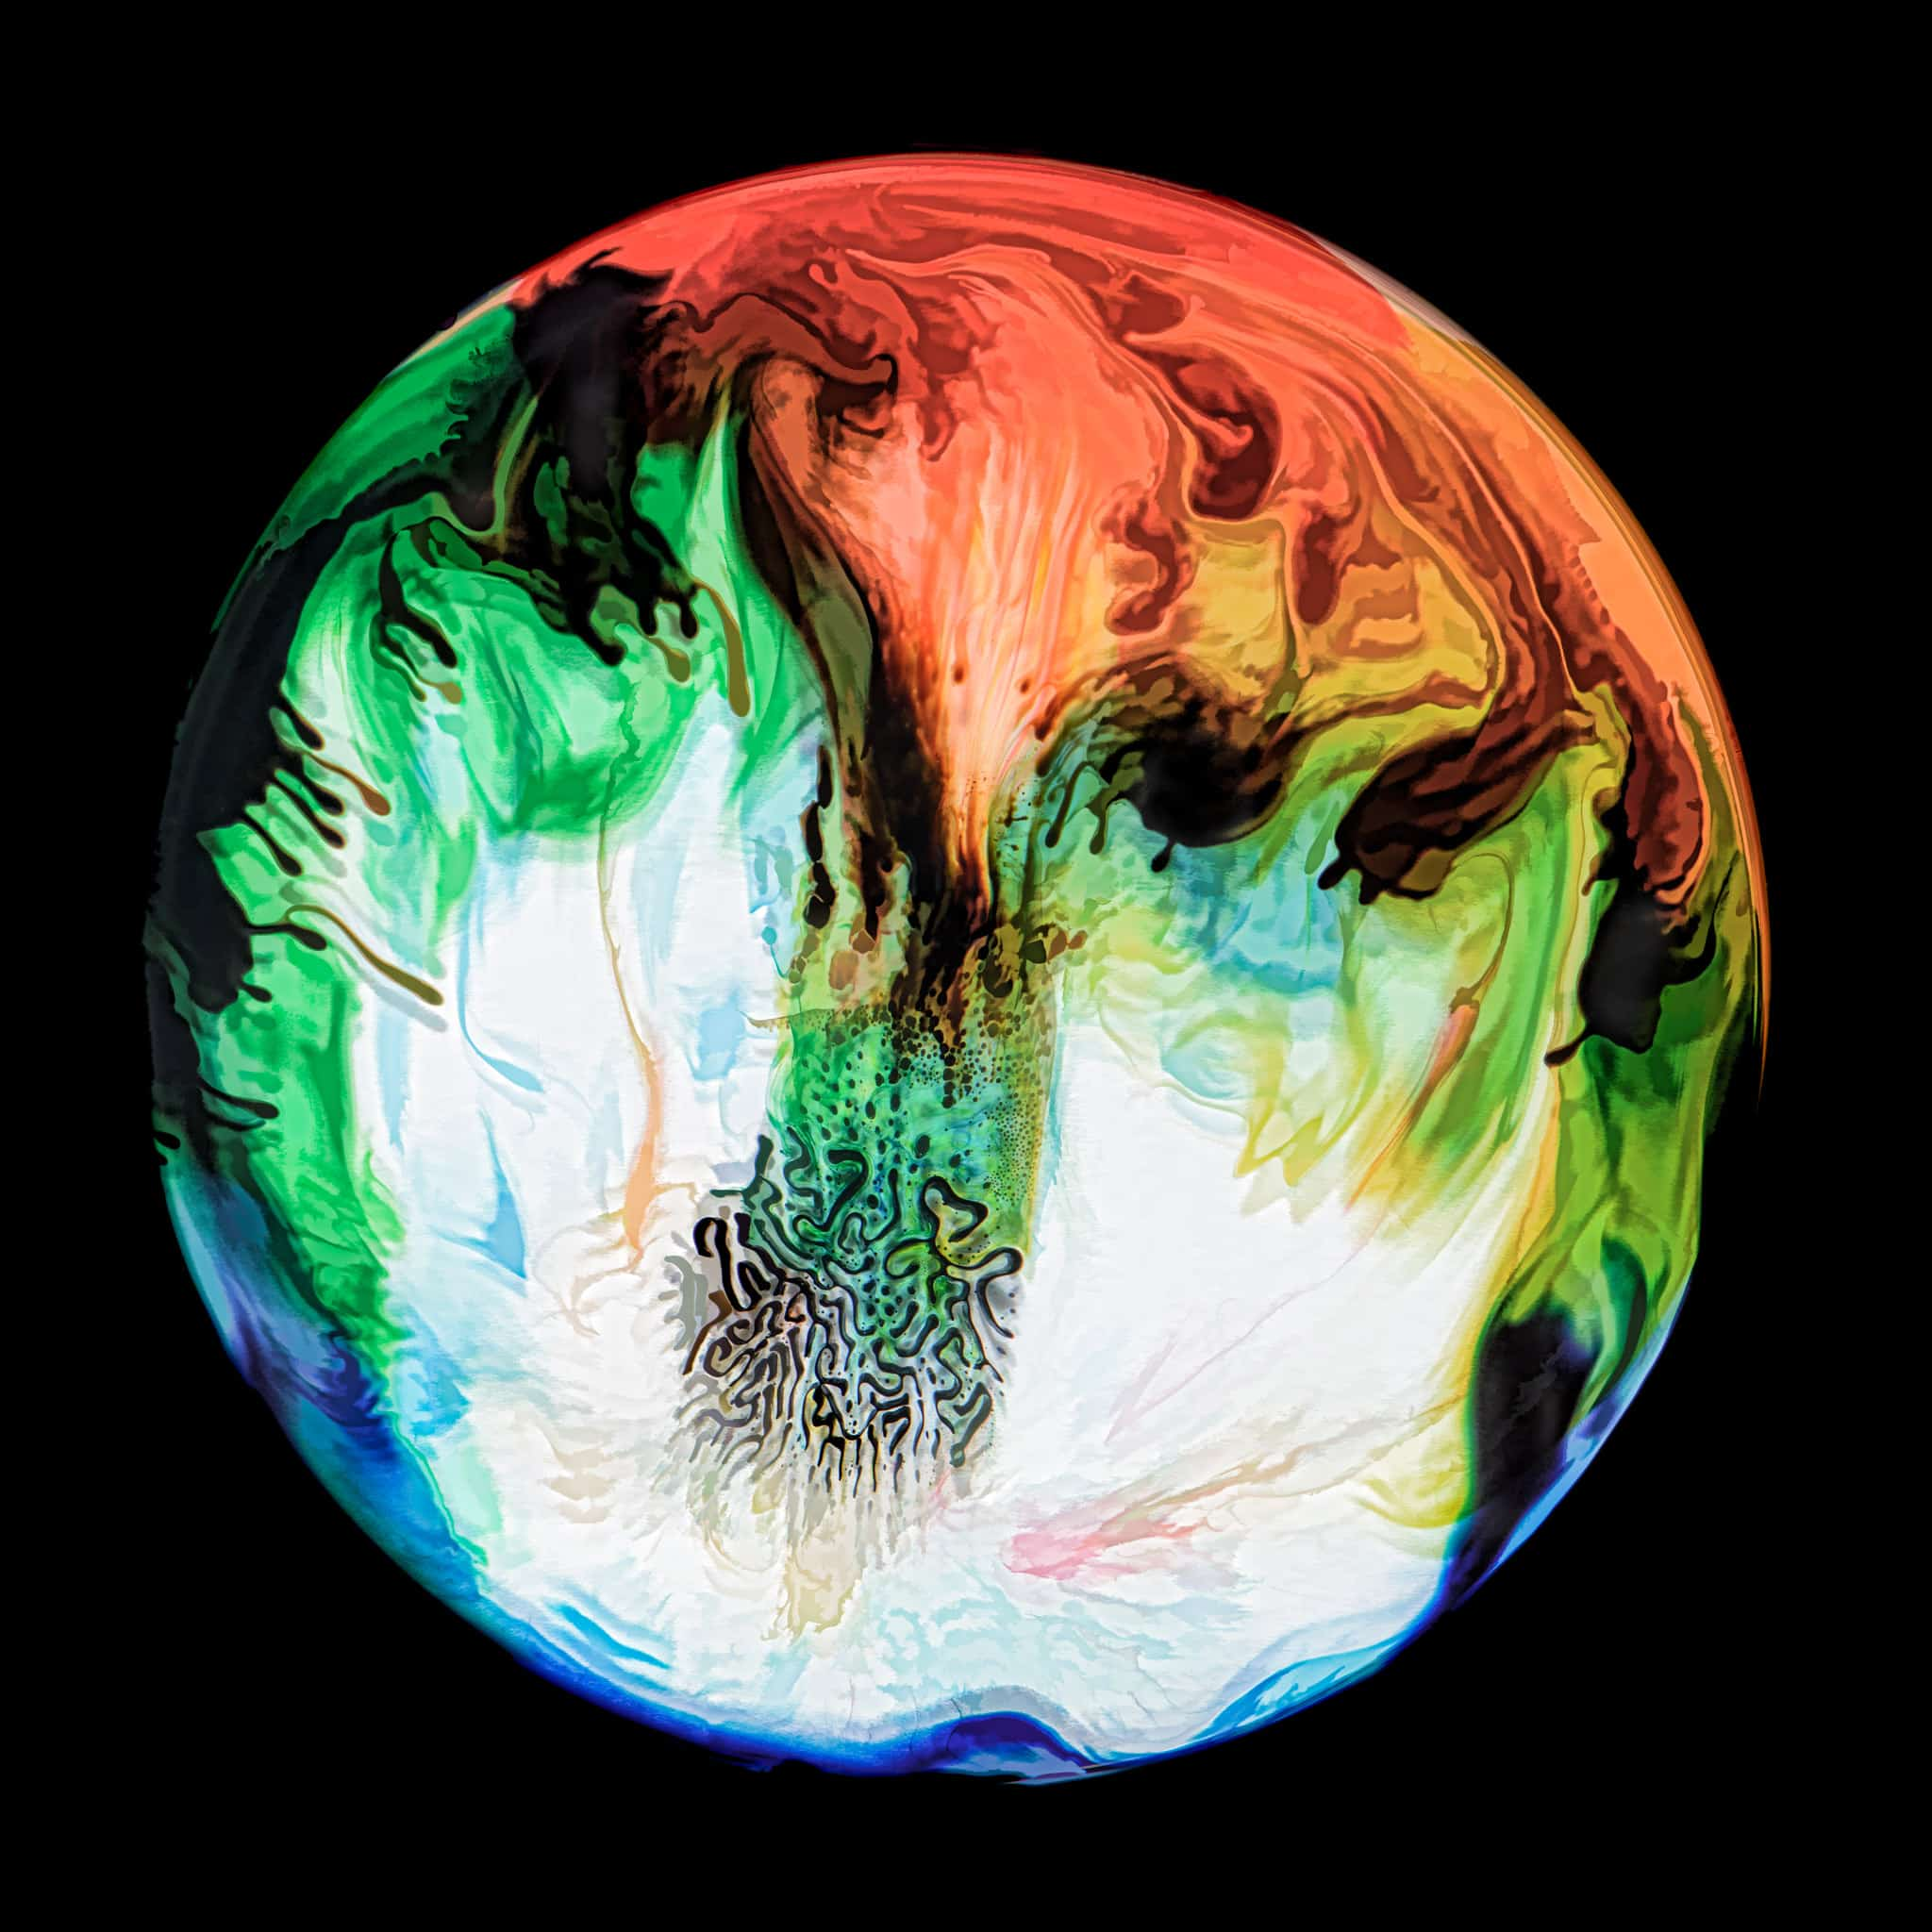 Ferro-magnetic fluid in a petrie dish with milk, food coloring, acrylic paint, and glycerine. - Ferrofluid abstract photographs